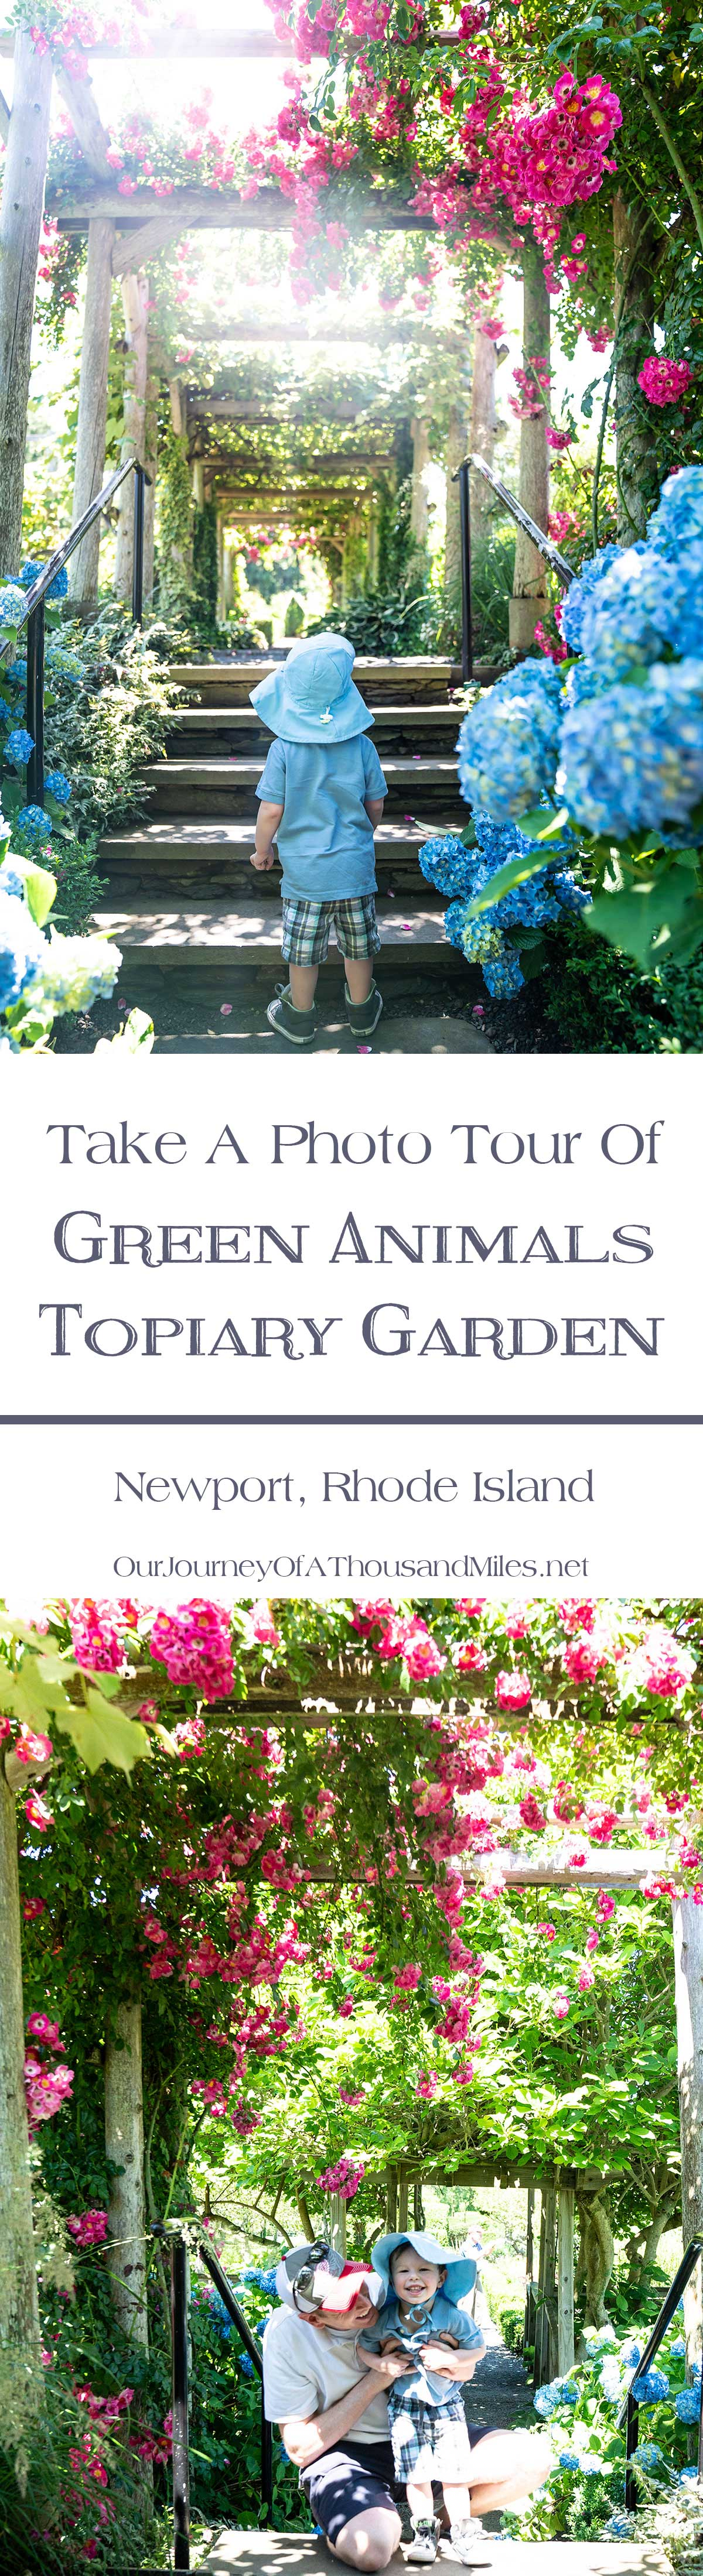 Take-A-Photo-Tour-Of-Green-Animals-Topiary-Garden-Newport-Rhode-Island